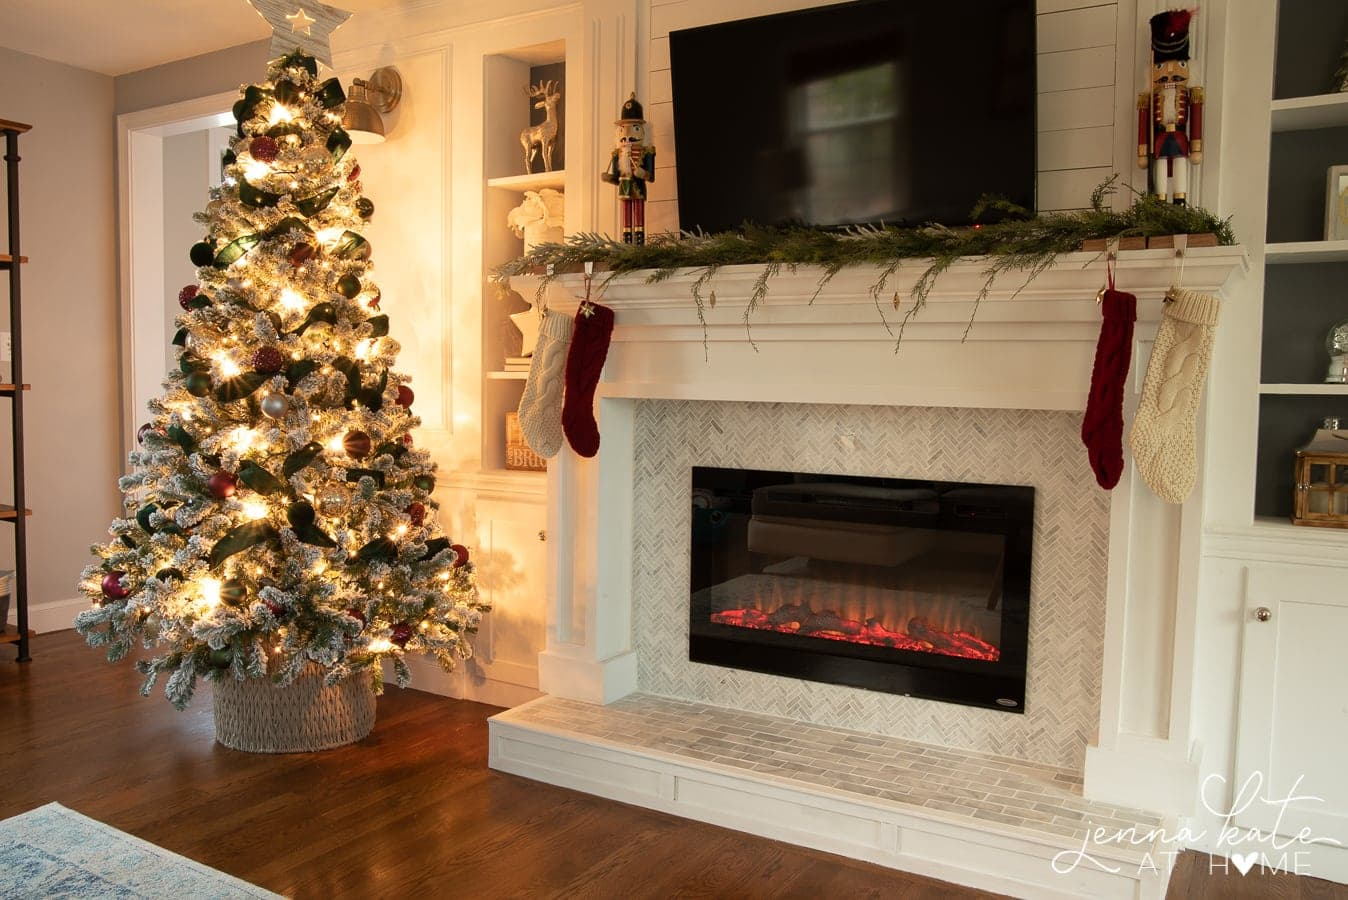 A Christmas tree in a dark room, lighted, near a fireplace holding stockings and various holiday decor